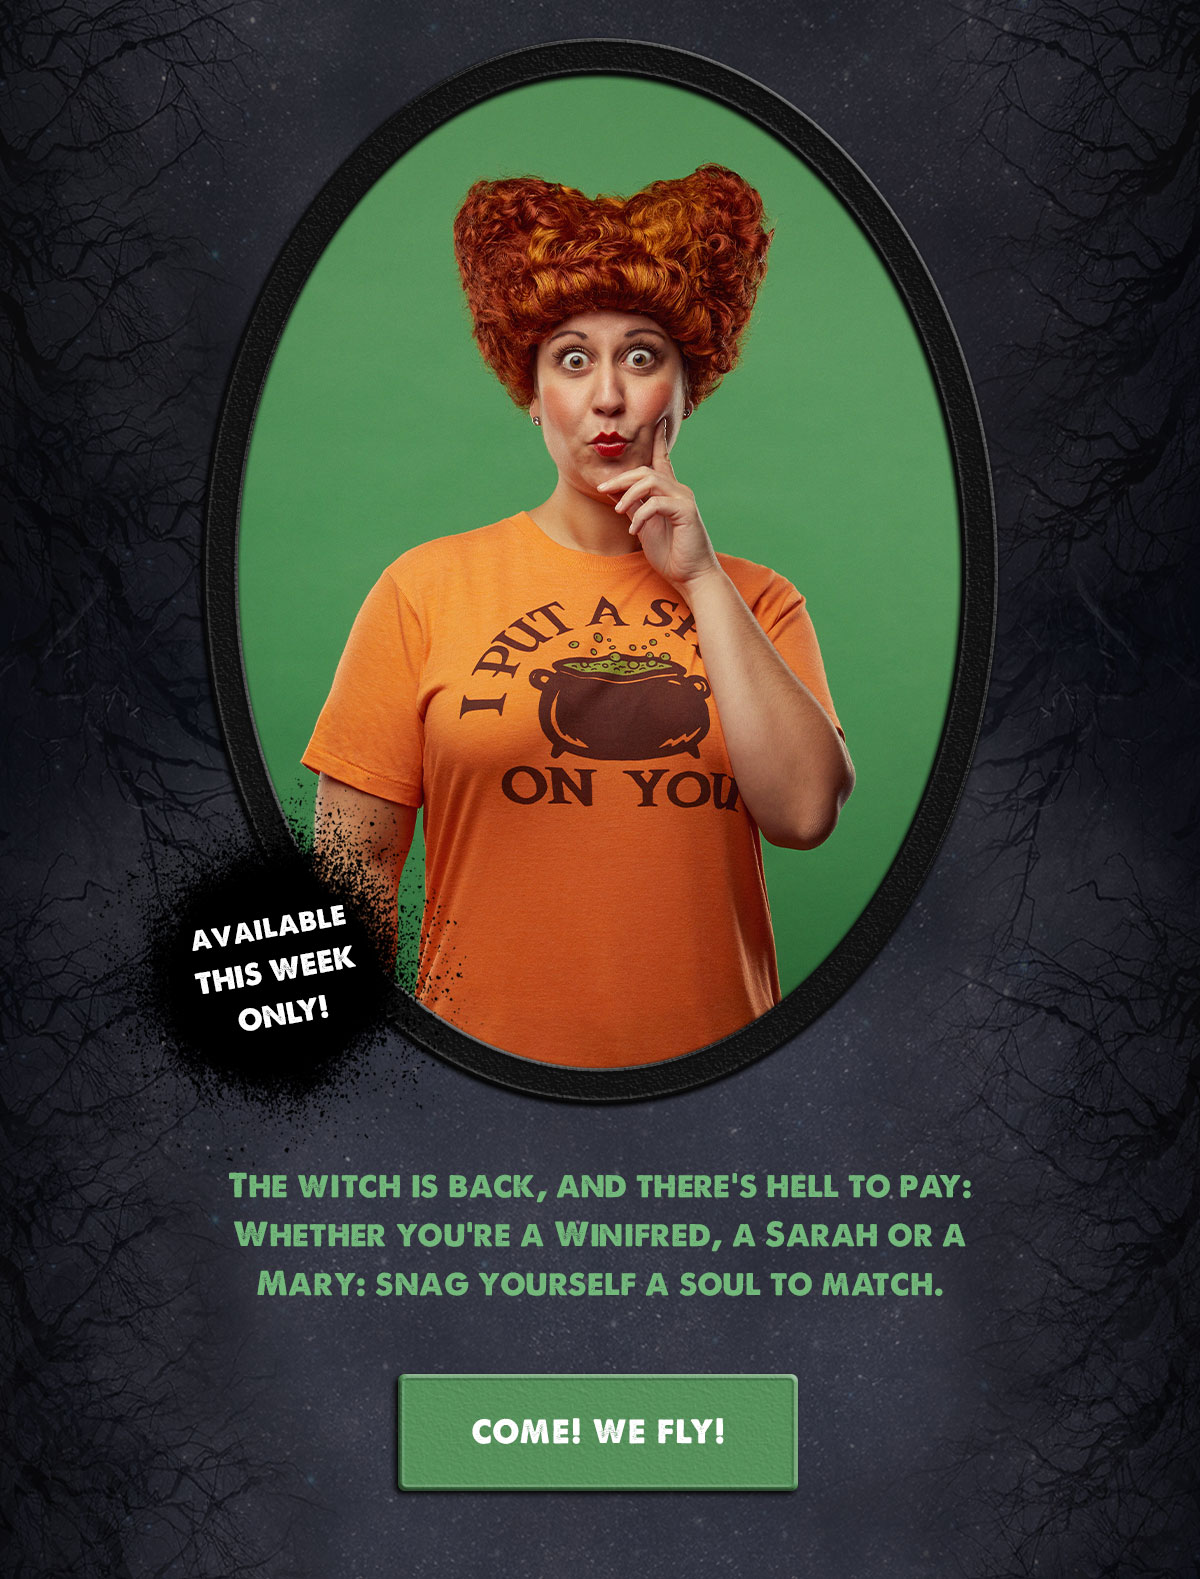 The witch is back, and there's hell to pay:  Whether you're a Winifred, a Sarah or a Mary: snag yourself a soul to match.